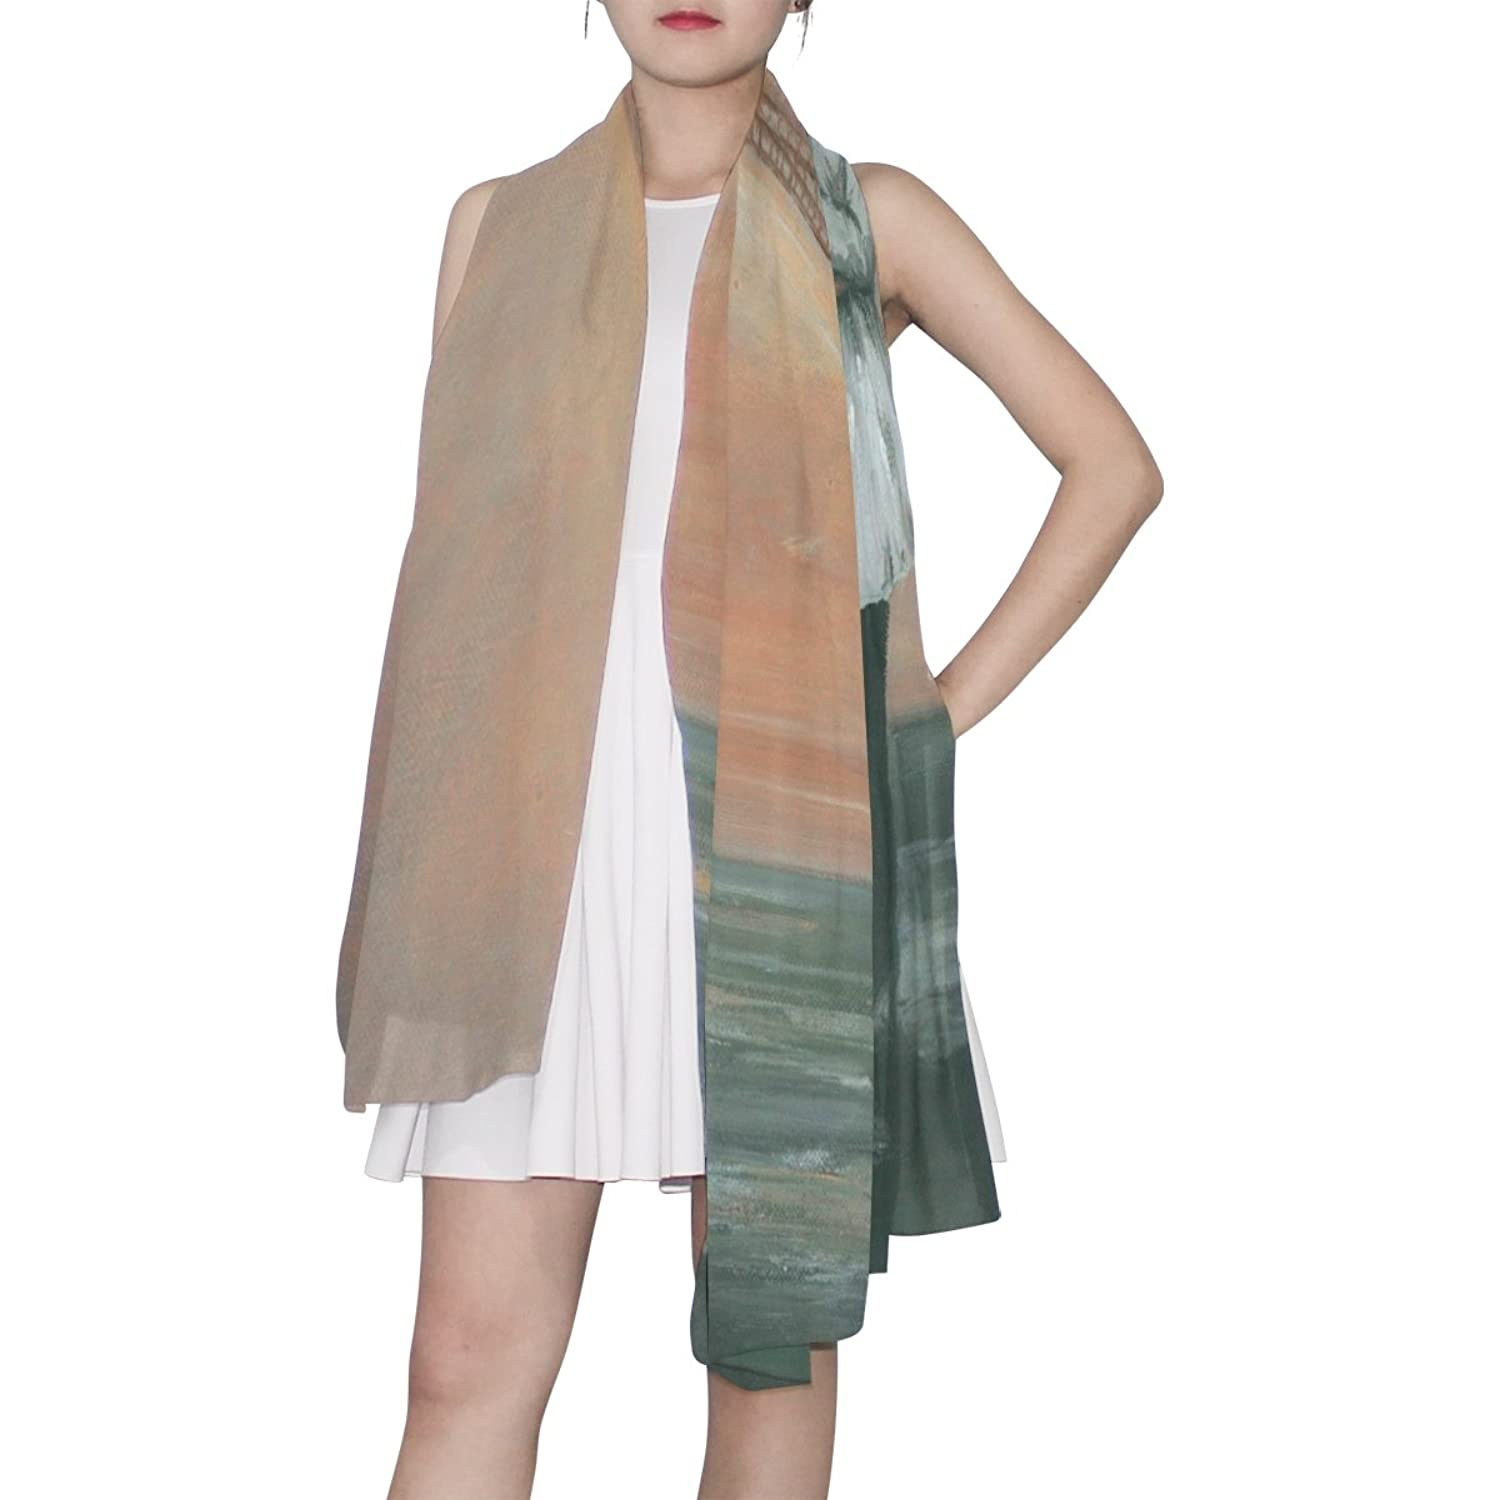 WDYSECRET City Of Romantic Silk Printing Scarves for Women 70.86x35.4(in)